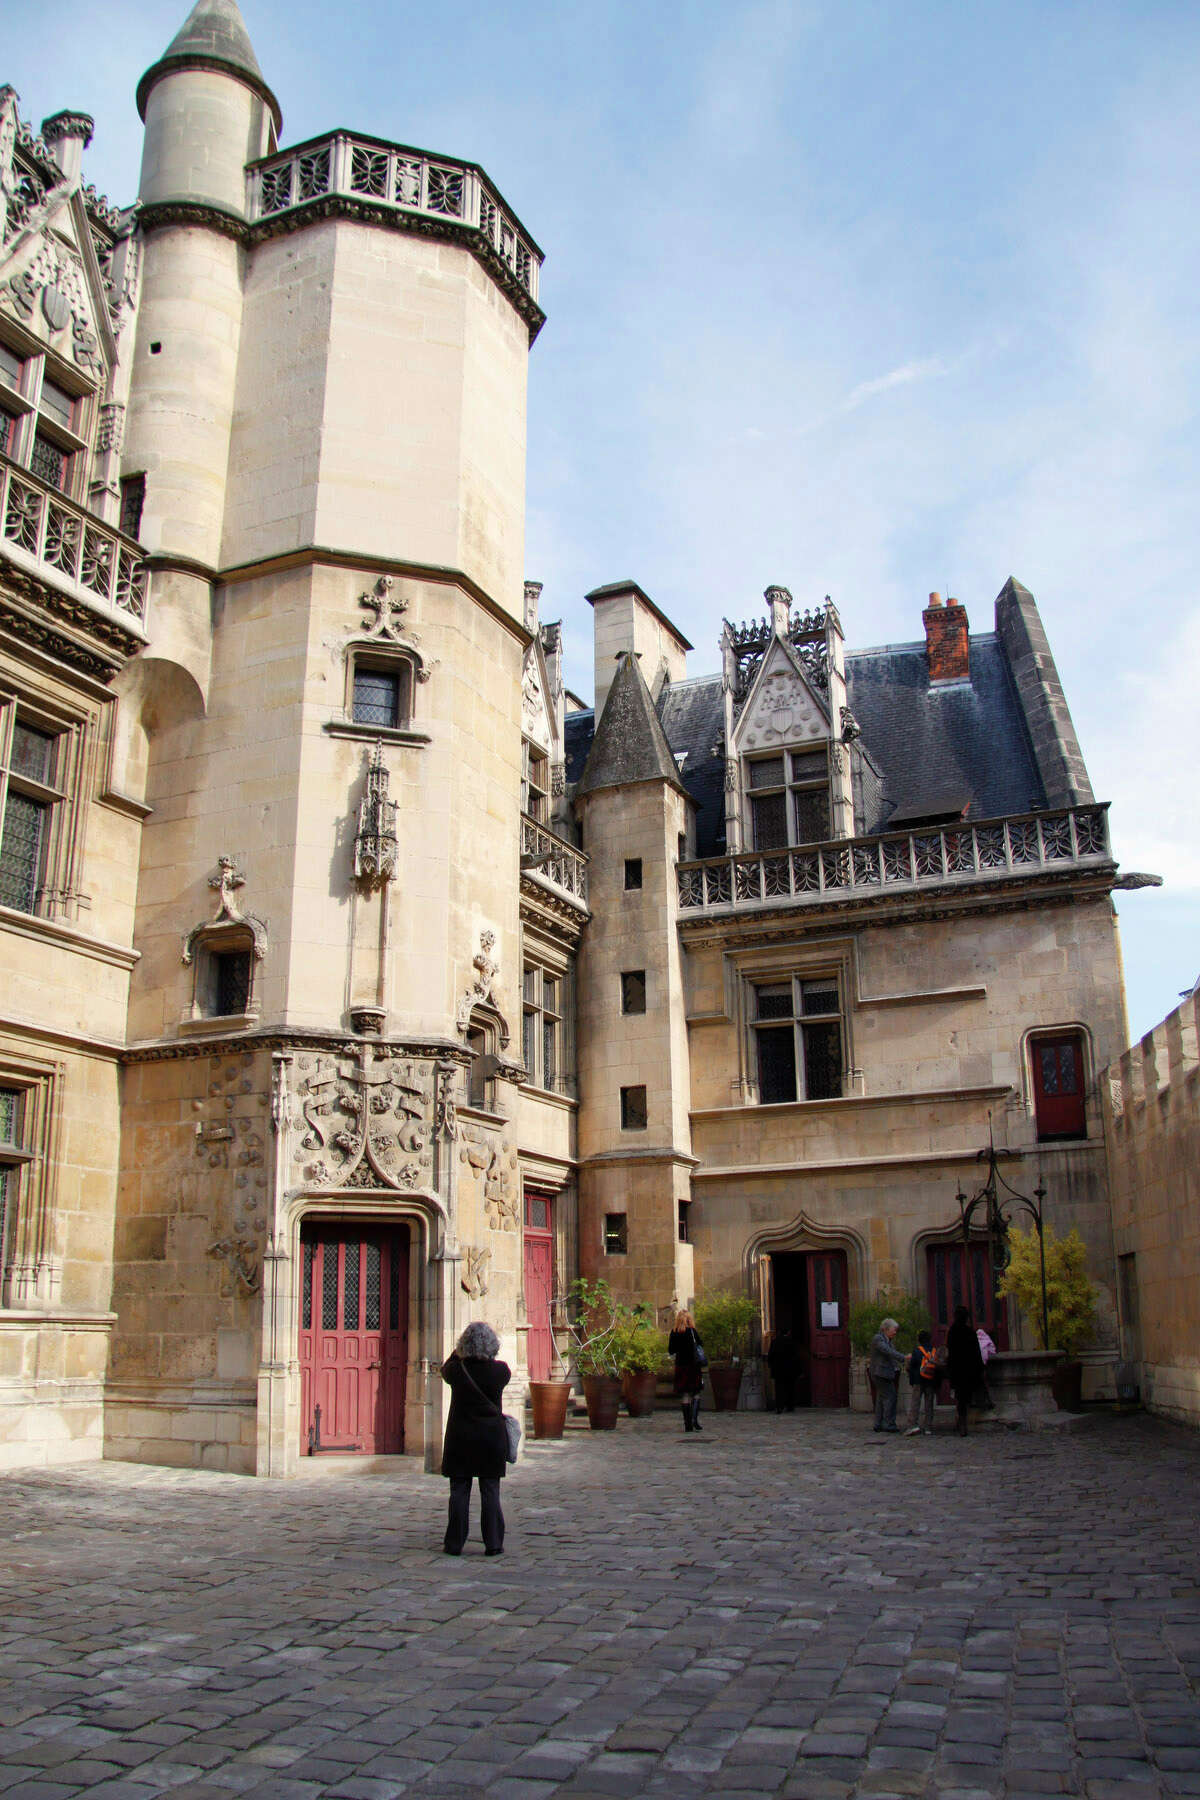 Visiting the little Cluny Museum in Paris to see the Lady and the Unicorn tapestries is a breeze.